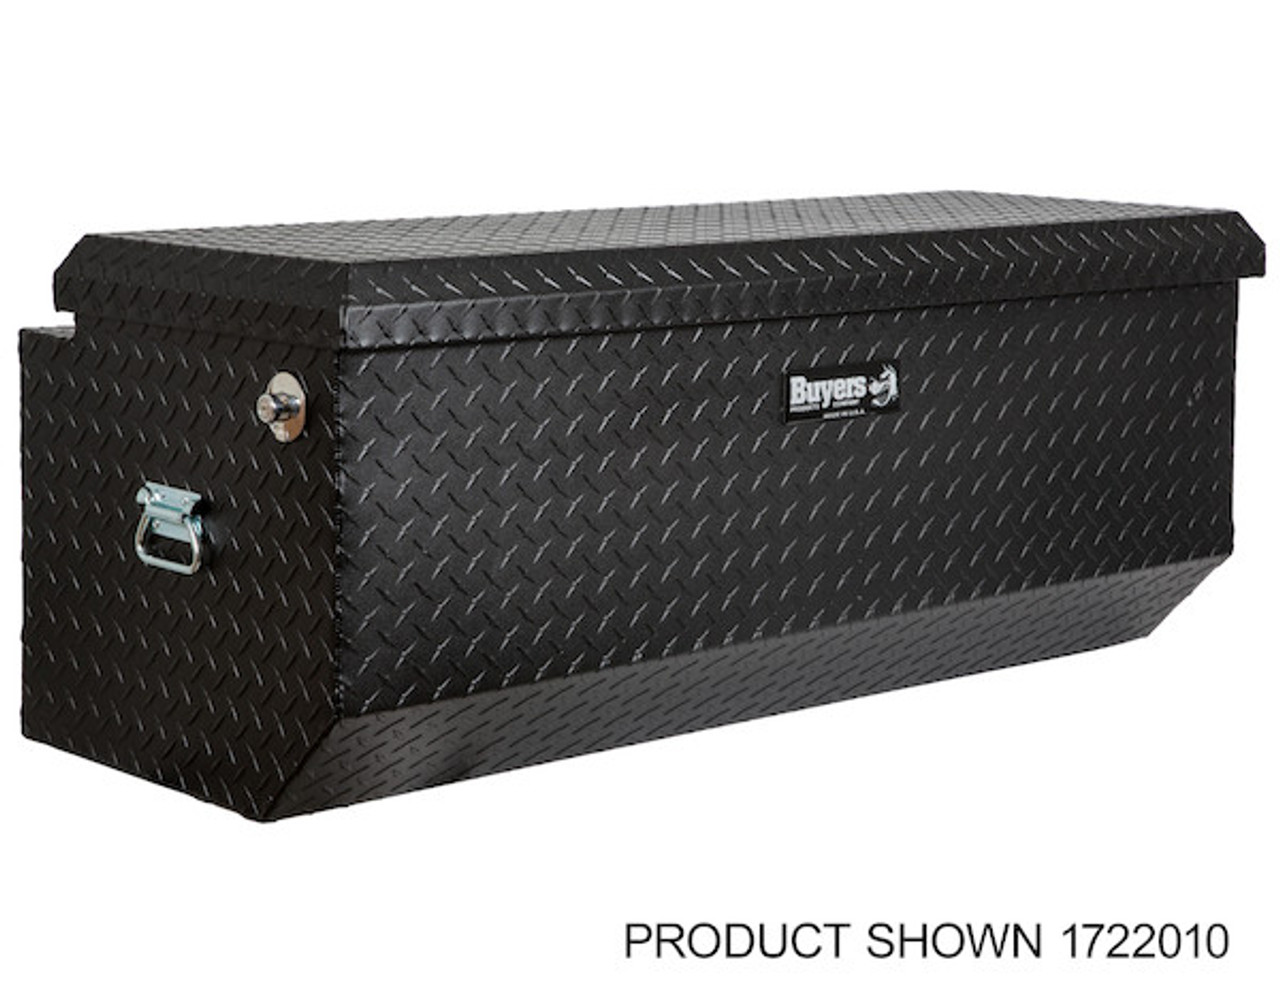 "1722010 BUYERS PRODUCTS TEXTURED MATTE BLACK DIAMOND TREAD ALUMINUM ALL-PURPOSE TOOLBOX WITH ANGLED BASE 19""HX20""DX47""W Picture # 1"